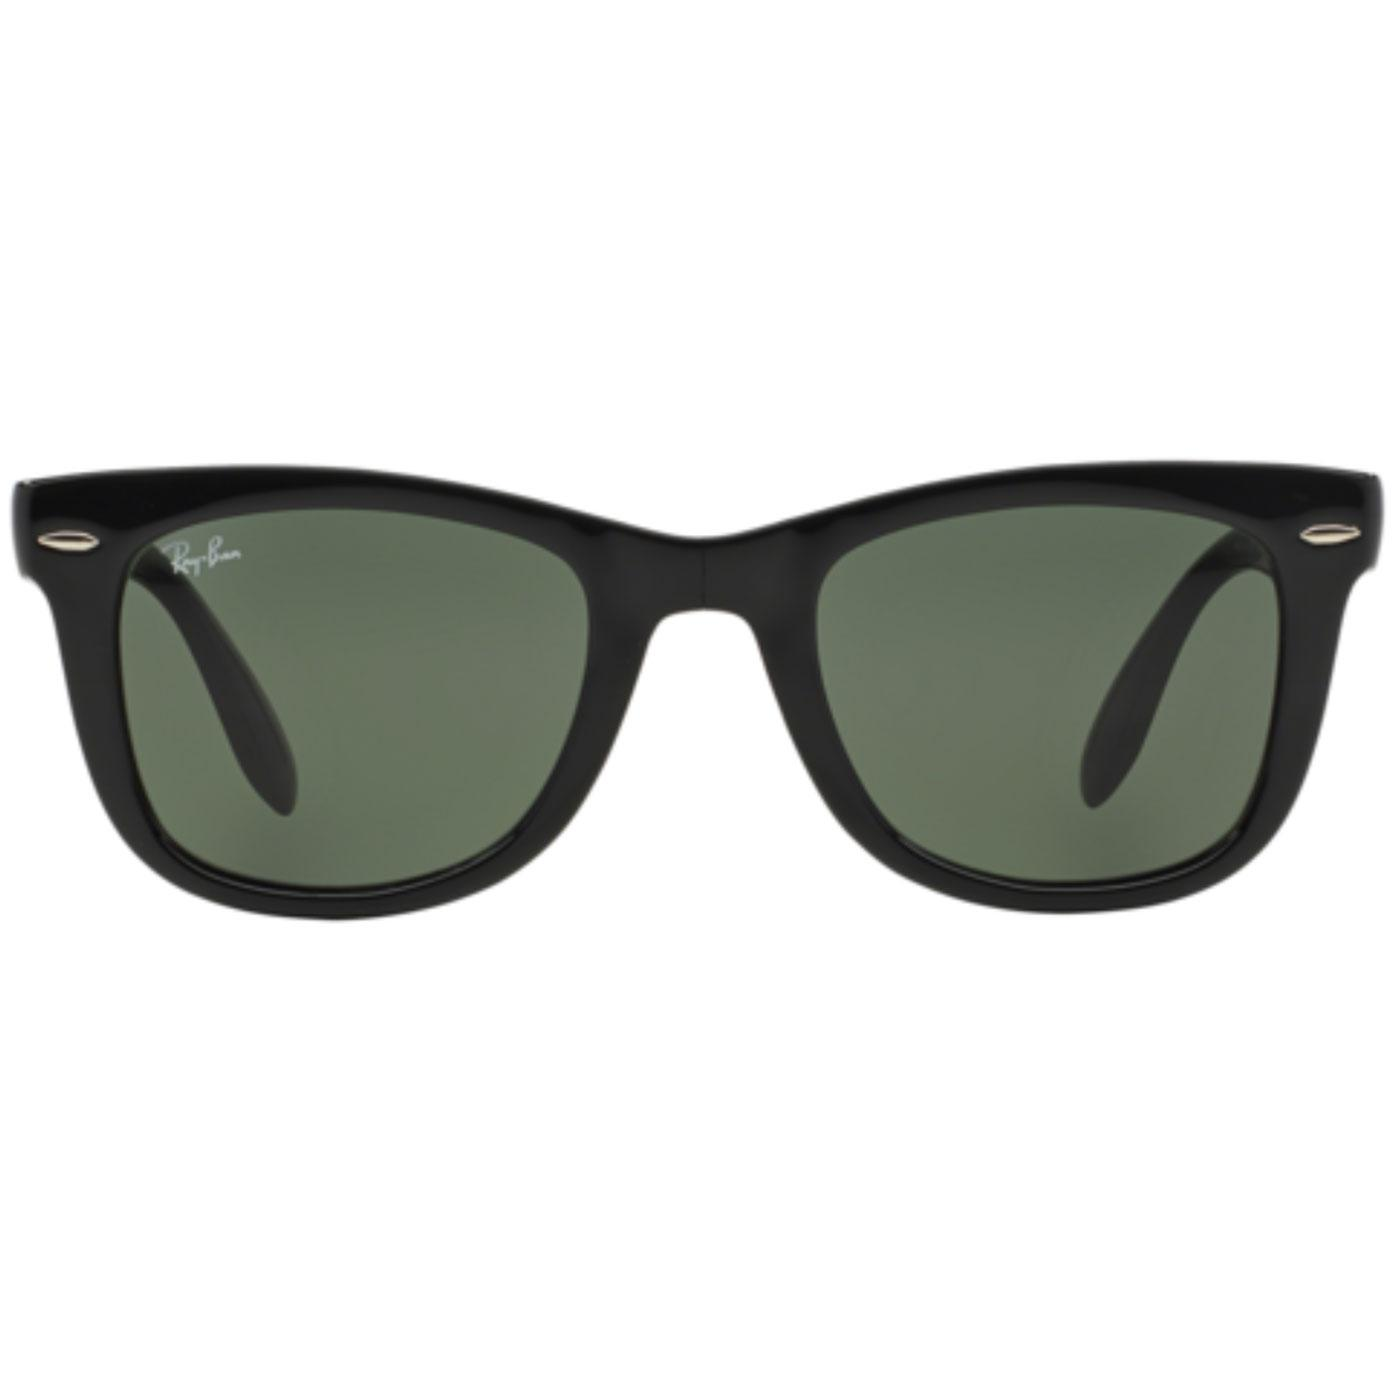 Folding Wayfarer RAY-BAN Retro Sunglasses in Black